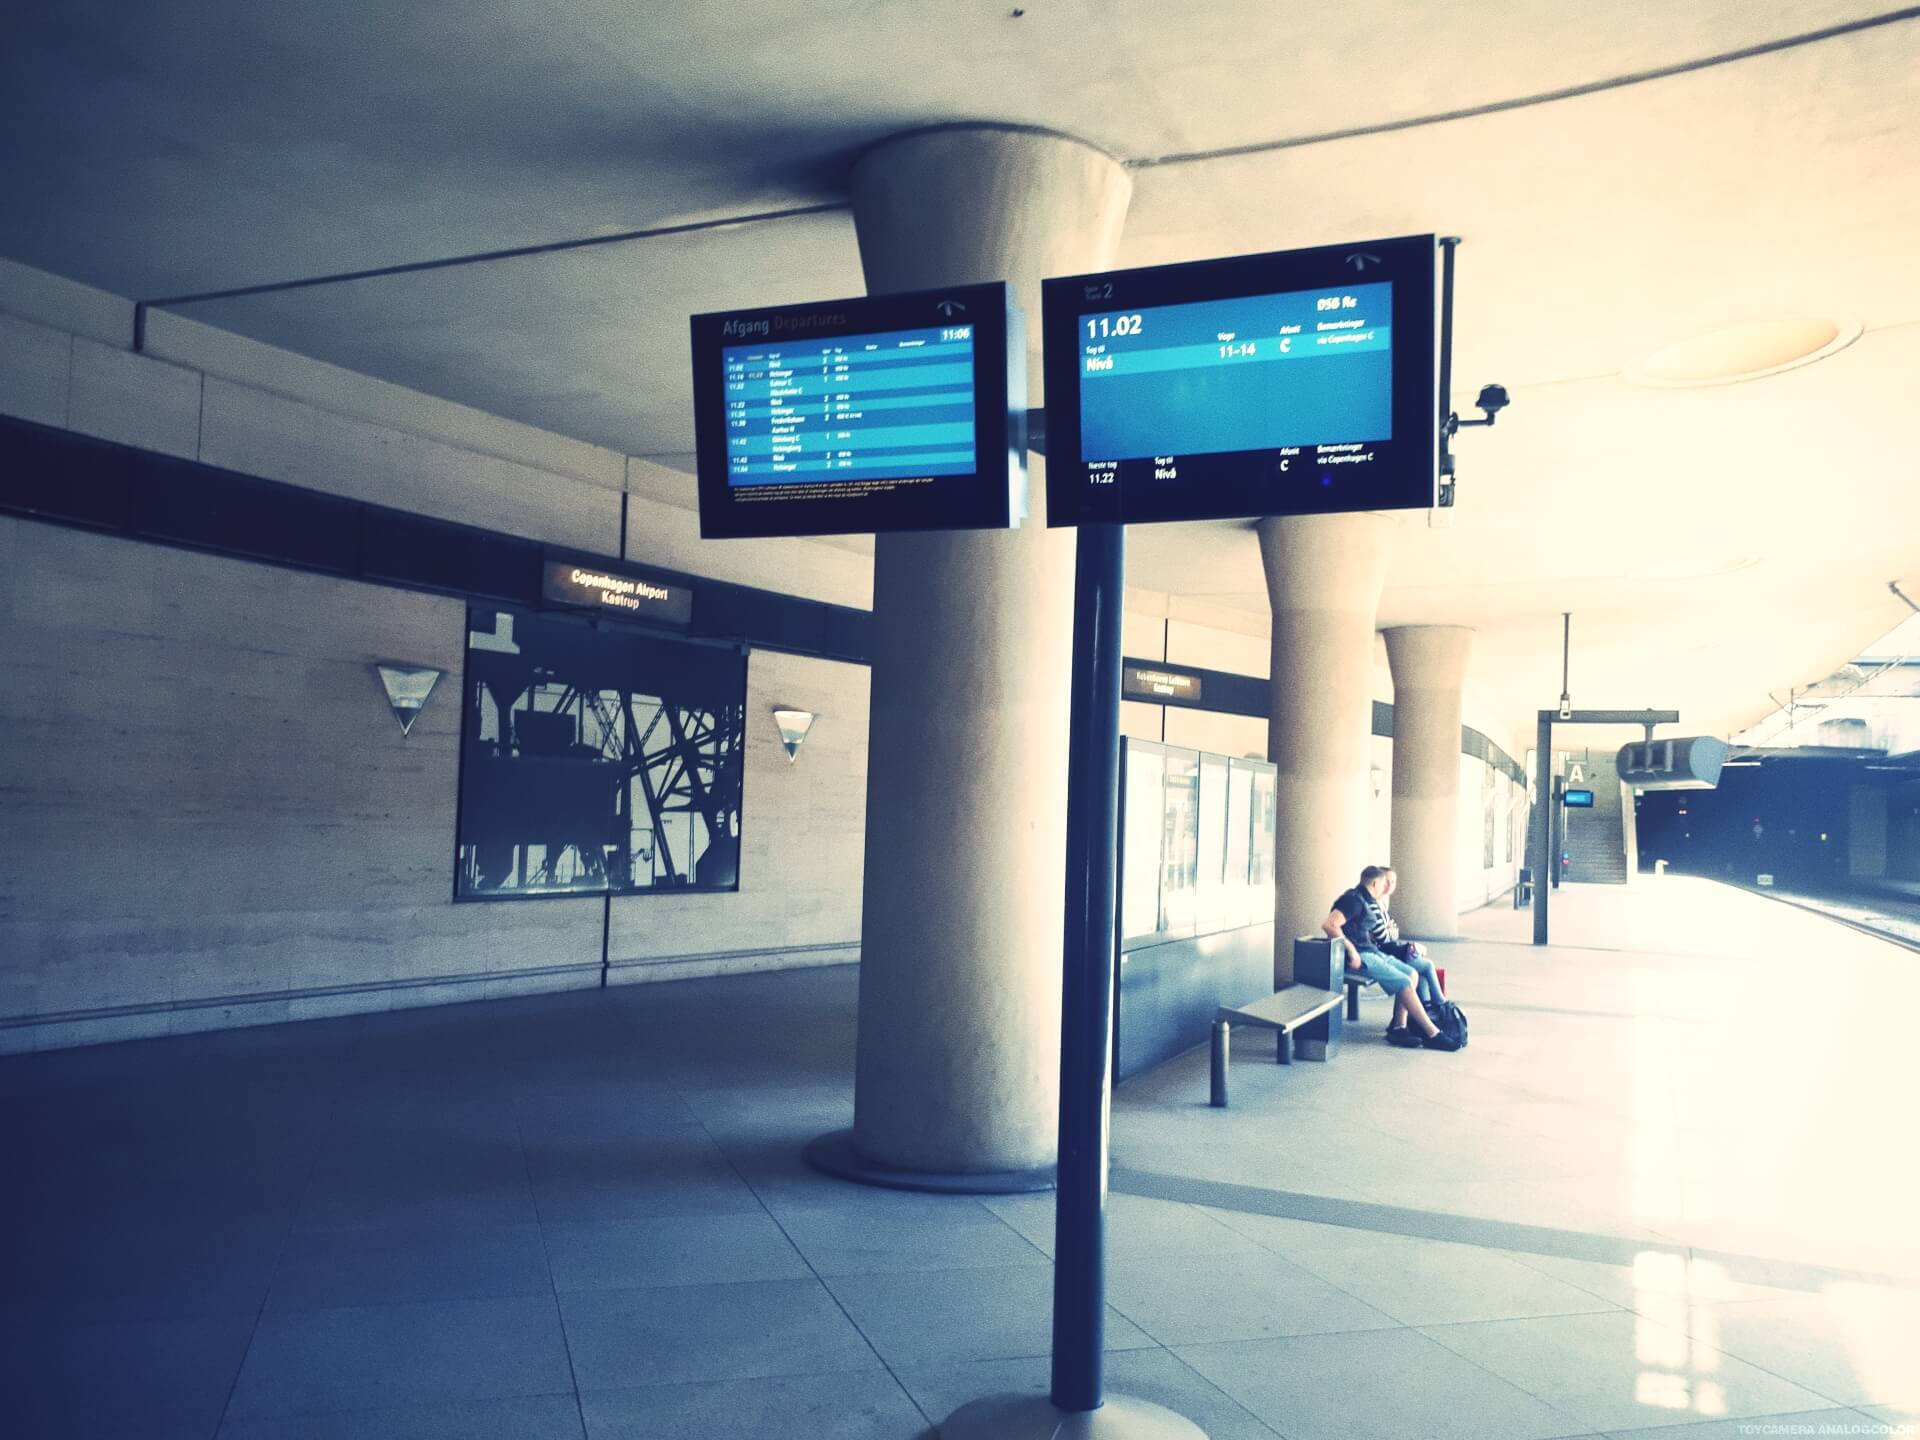 How to get from the airport to International People's College by train 15